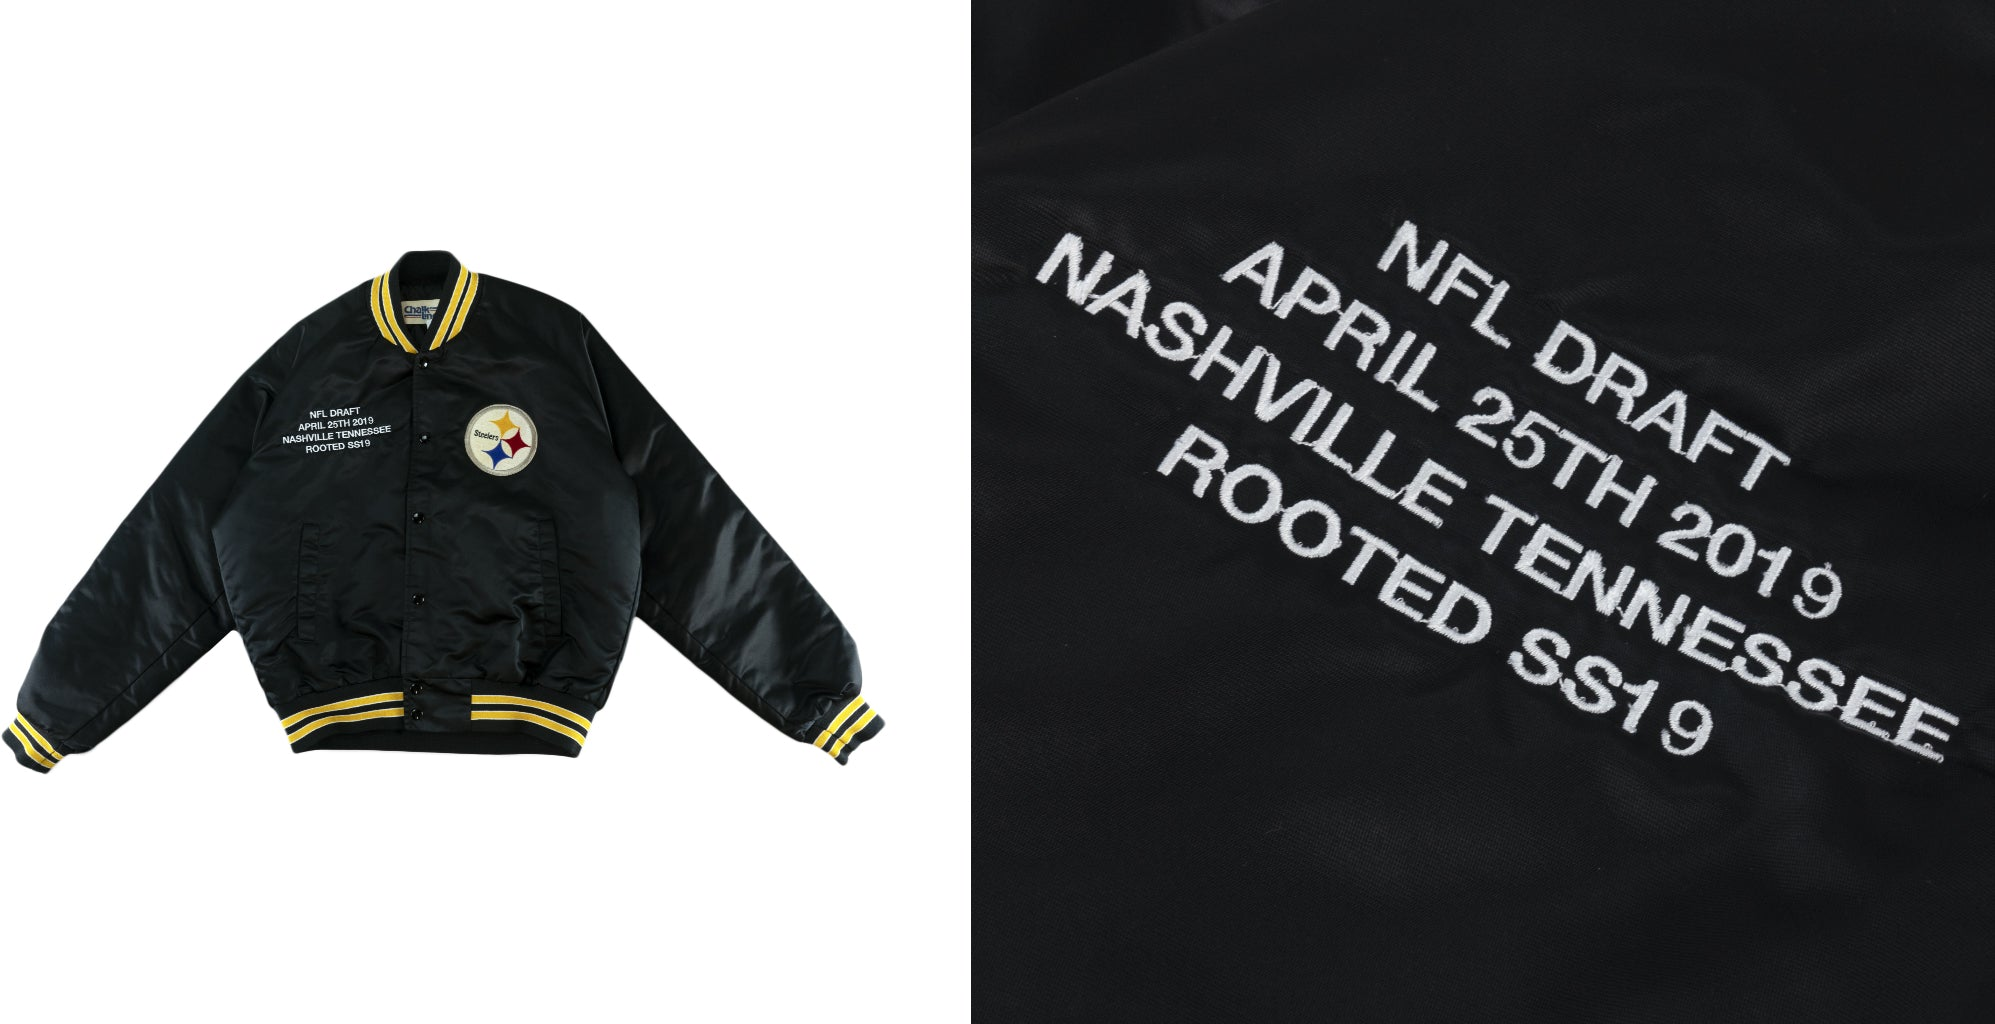 NFL Vintage Apparel-NFL Draft